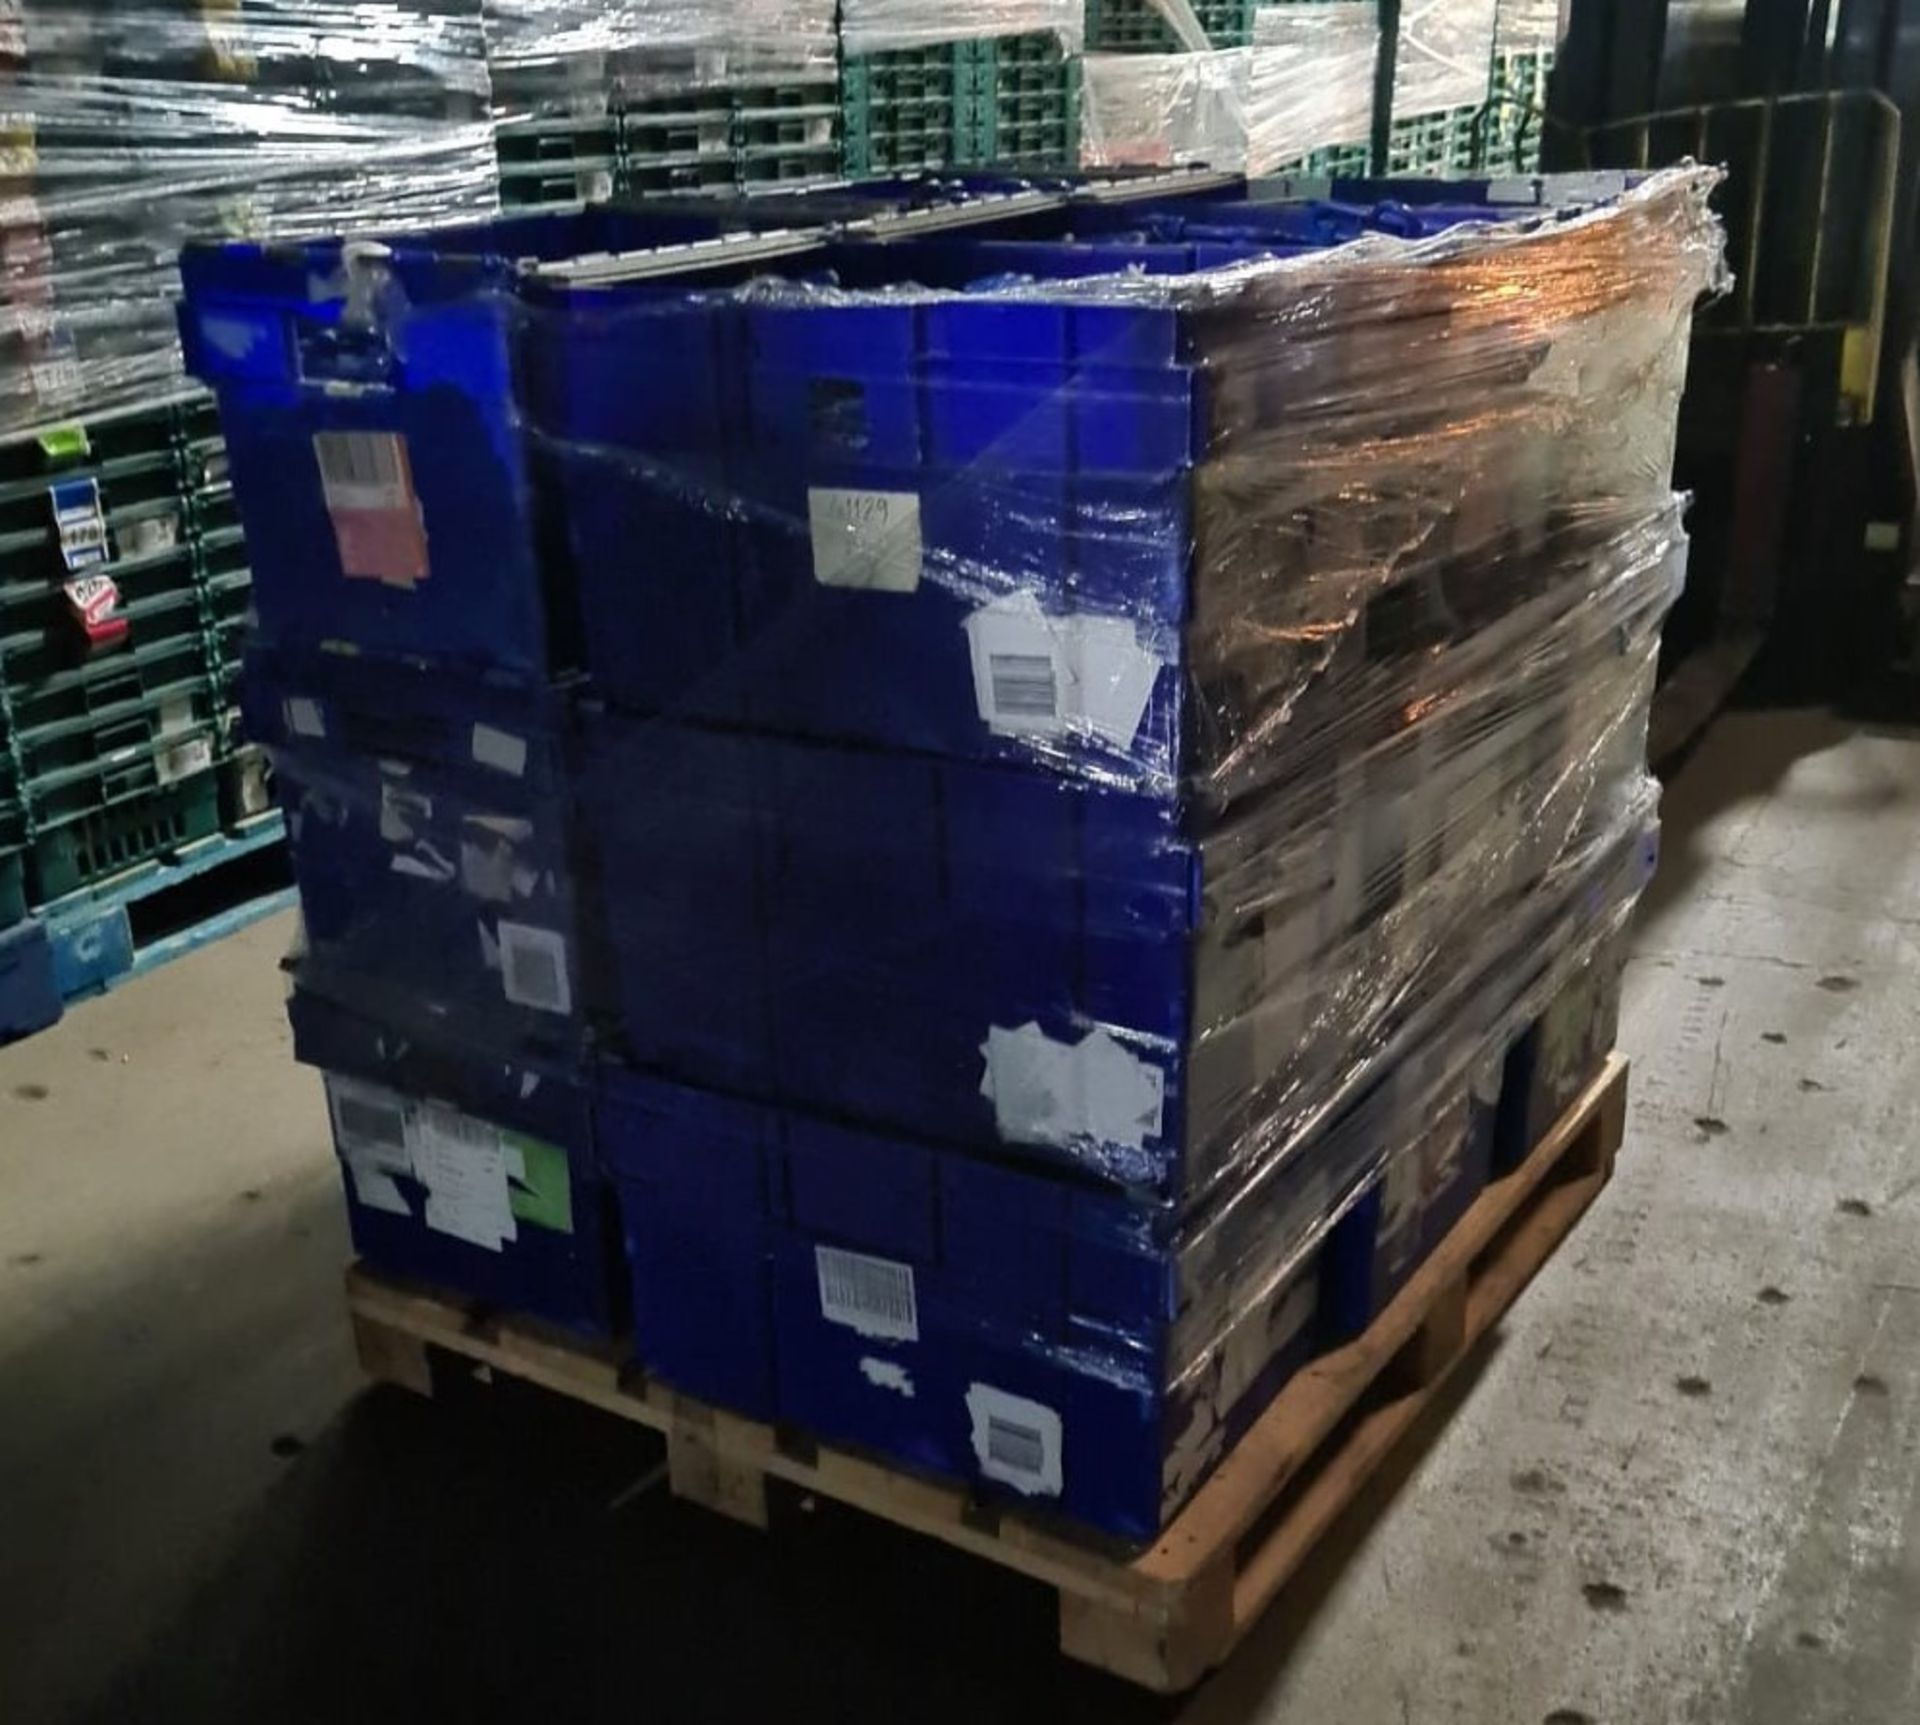 Pallet of 30 x used Blue Solid industrial storage containers/tote boxes from M&S. - Image 3 of 3